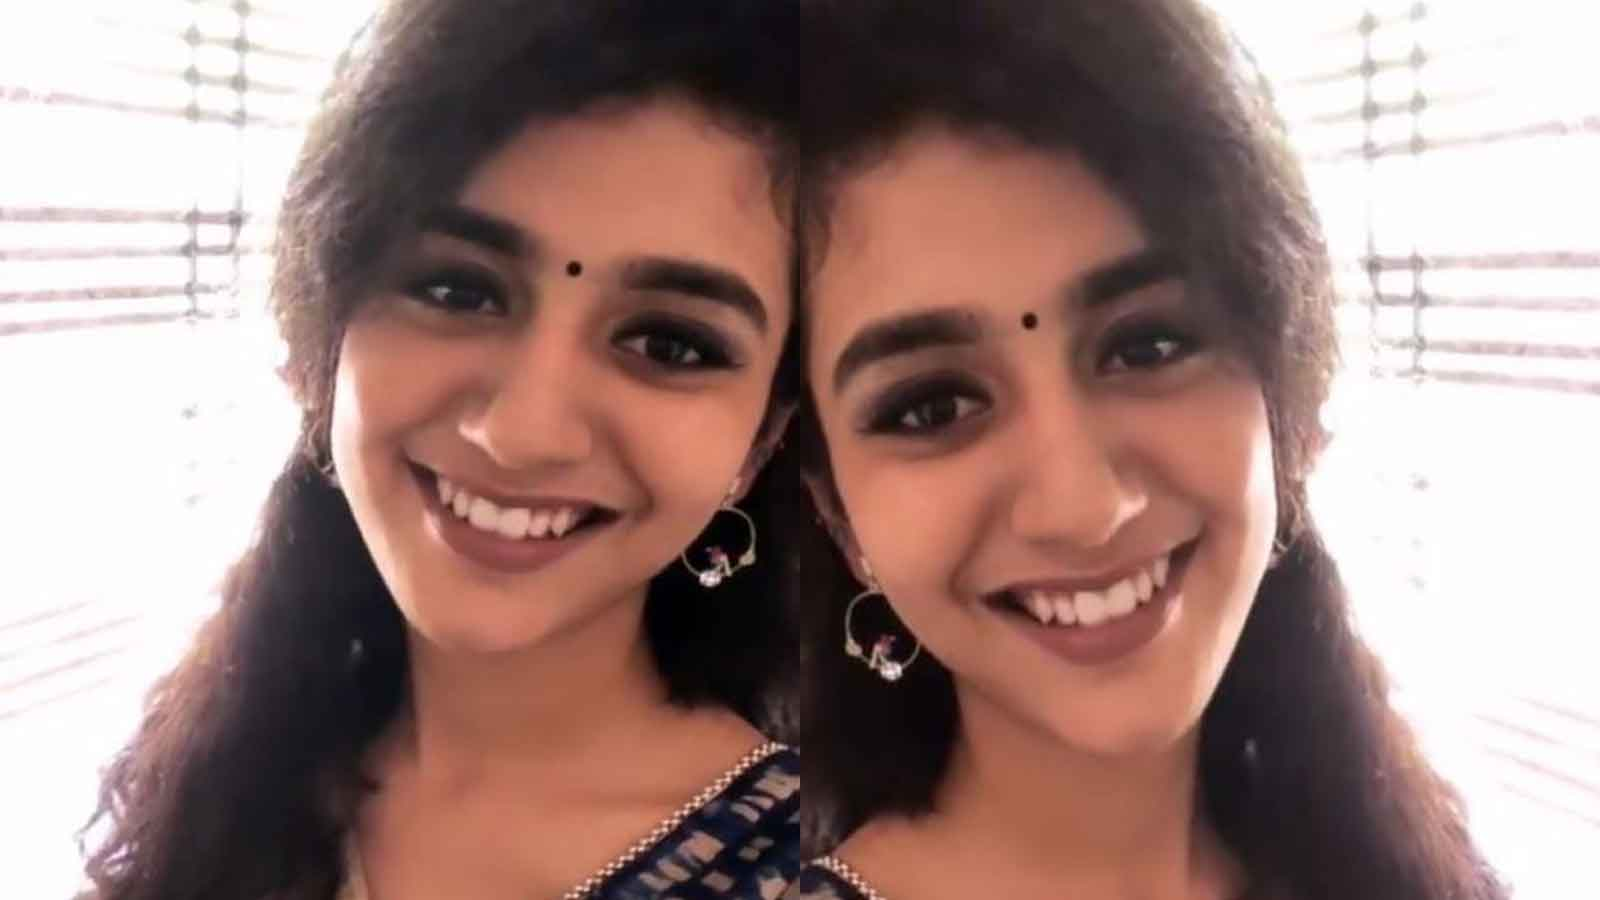 Priya Prakash Varrier wins hearts with her ethnic look and charming smile